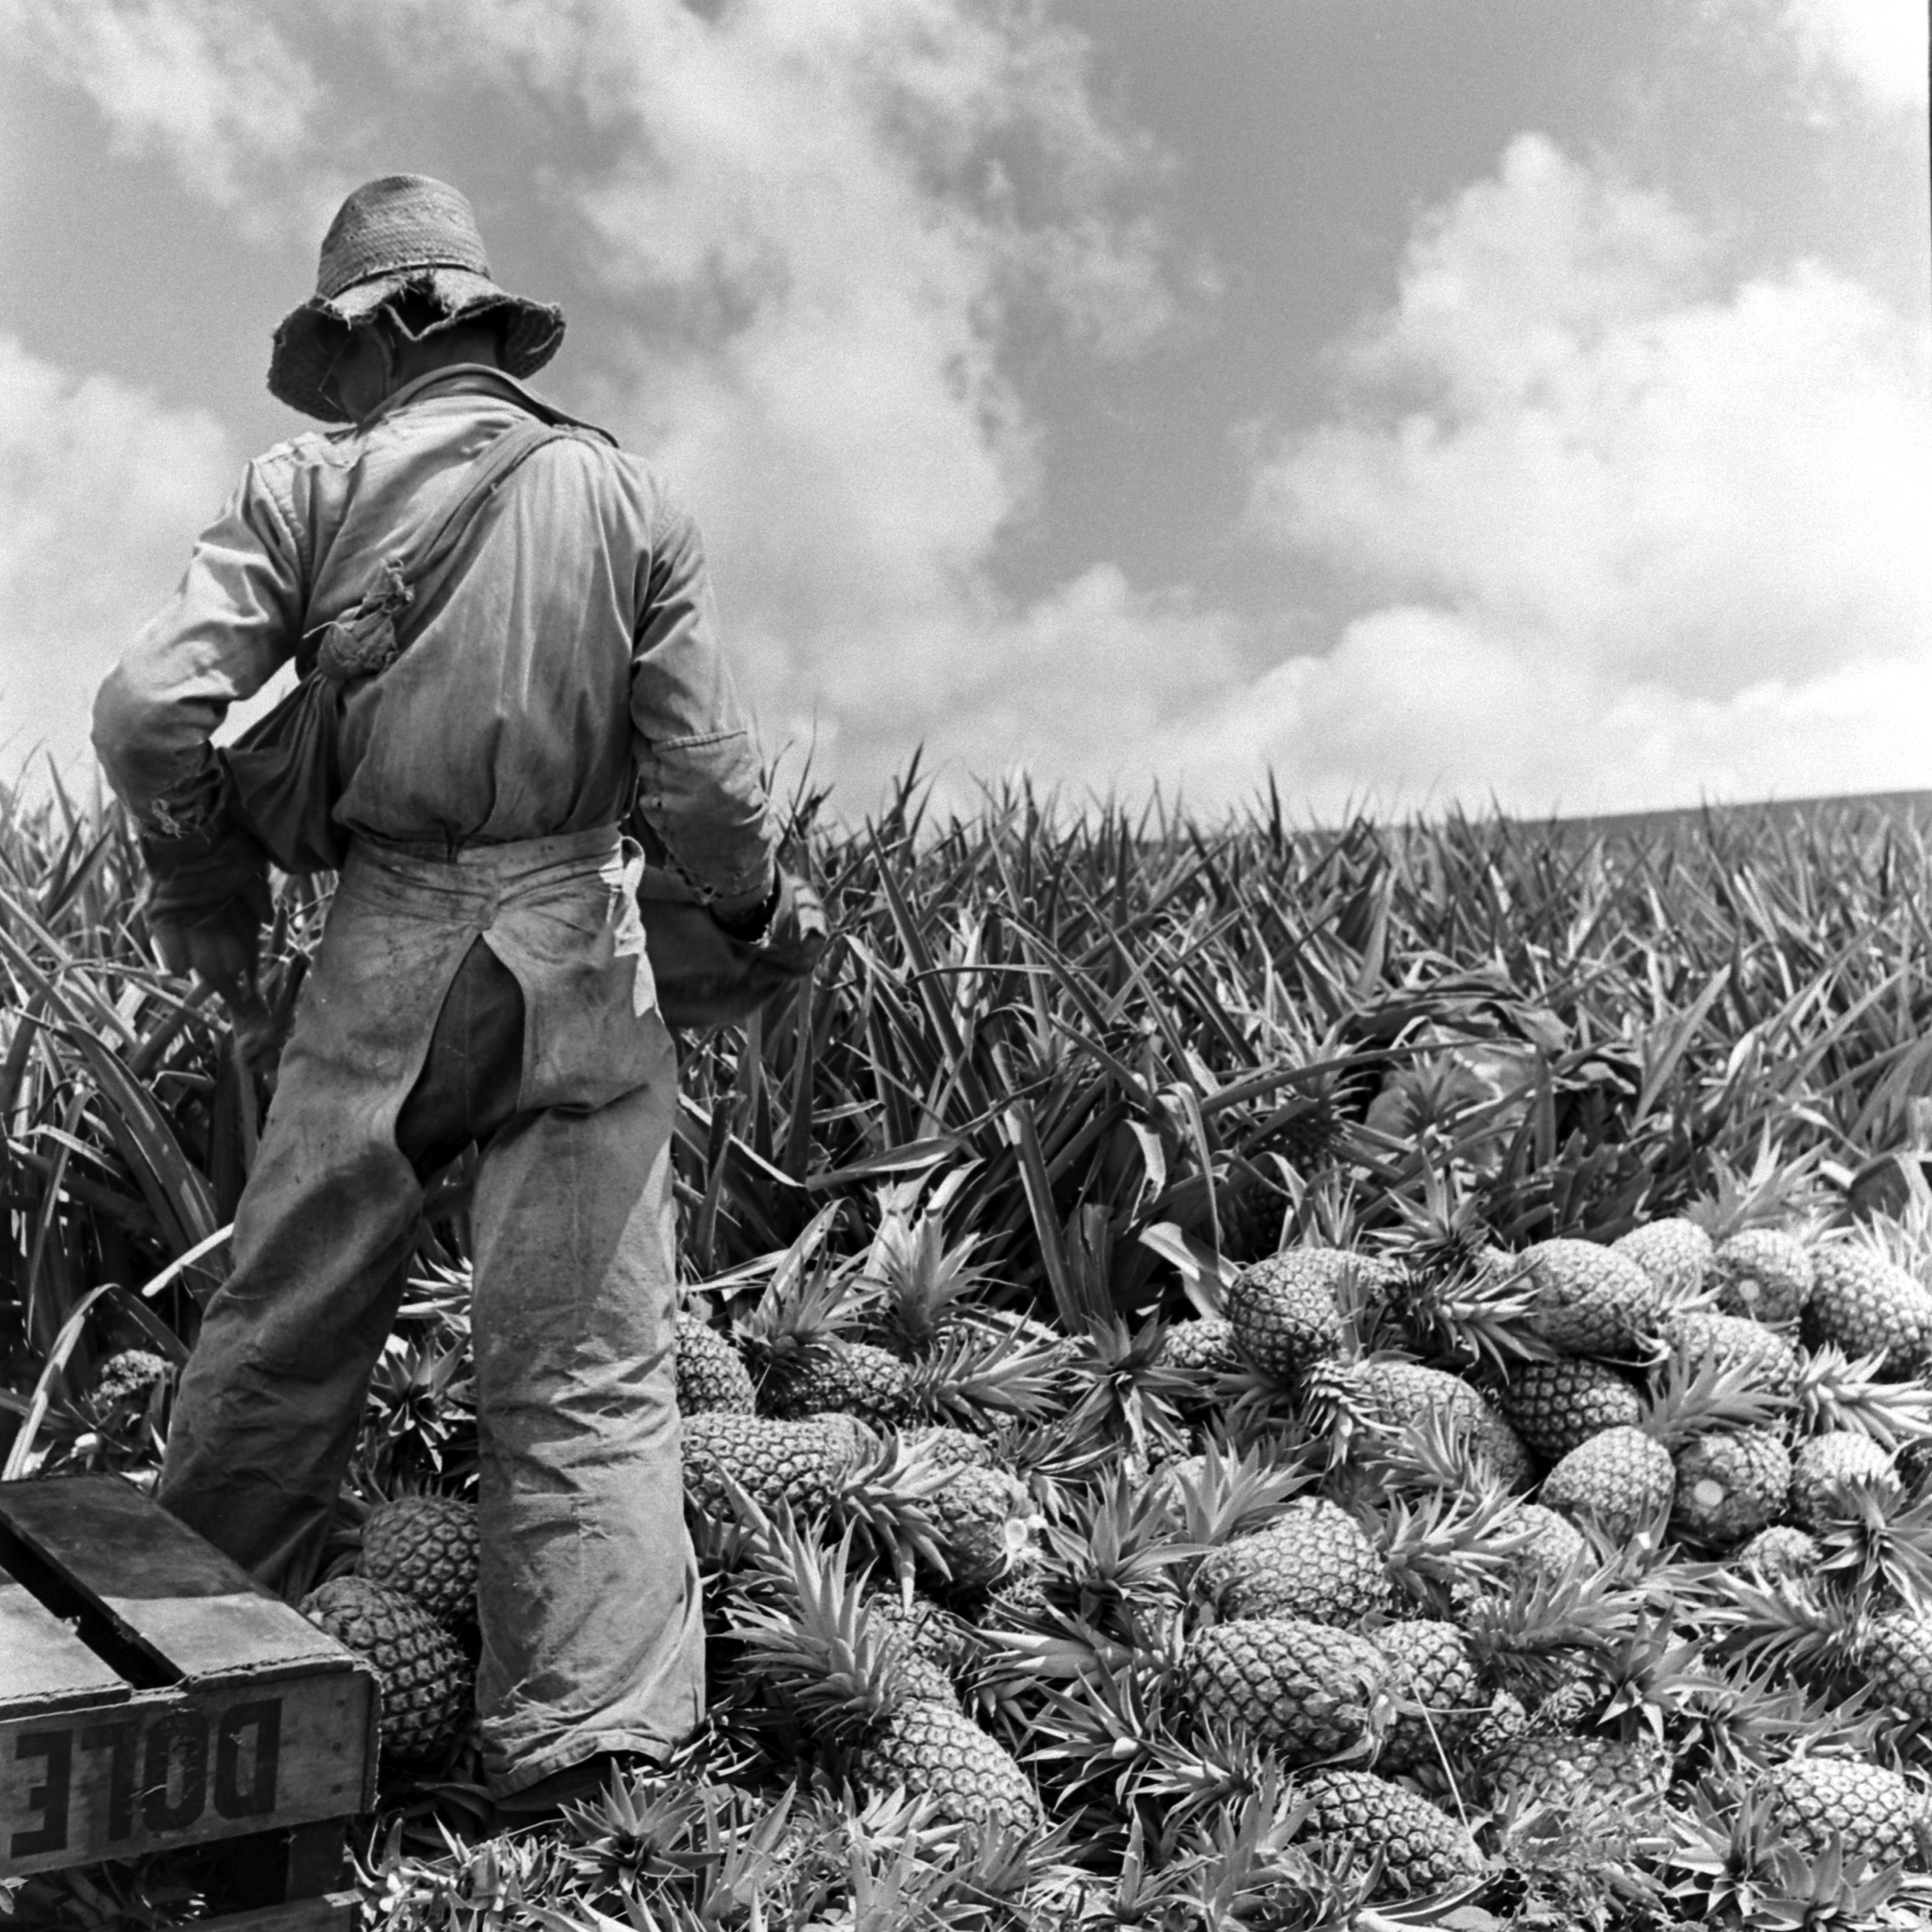 A worker on the Dole plantation gathers ripe pineapples.